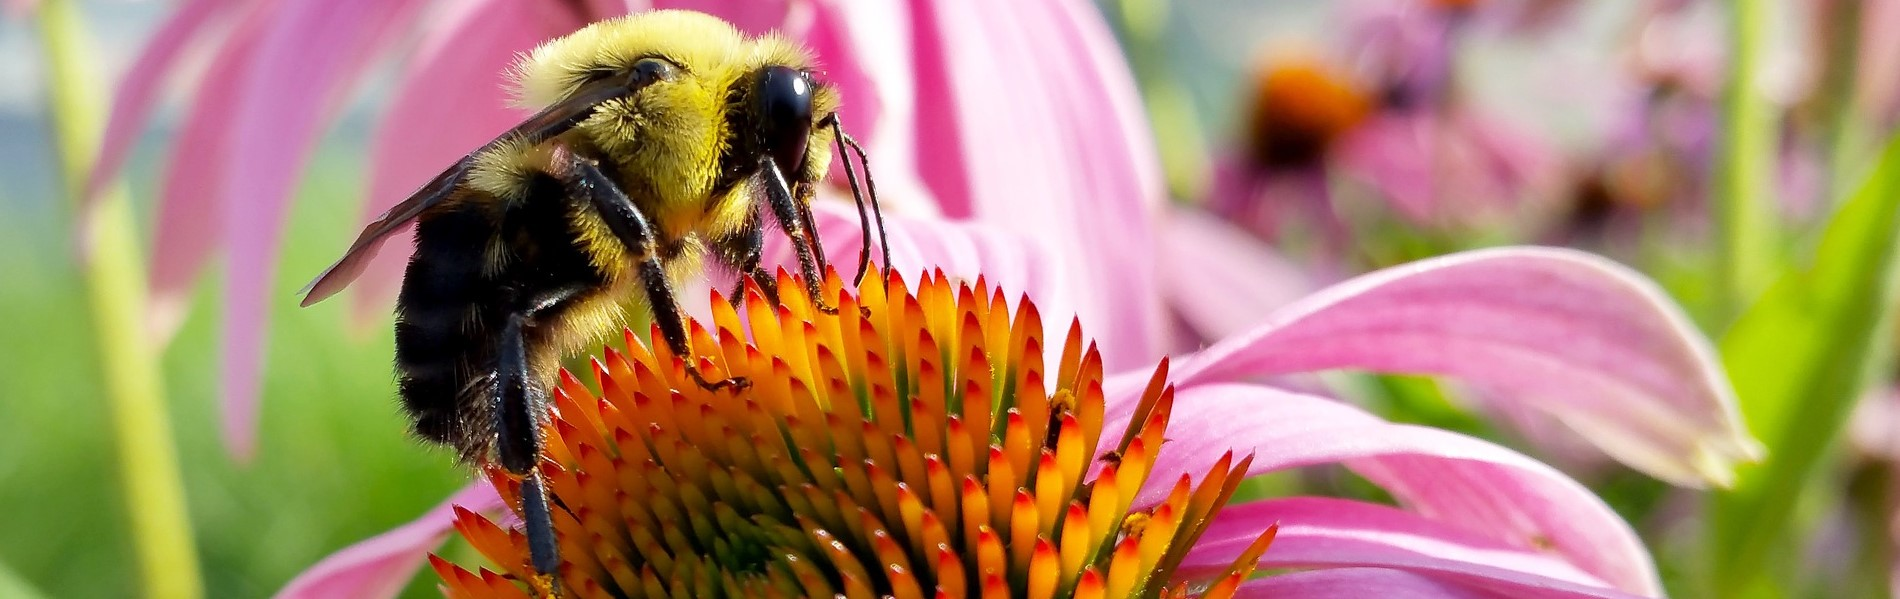 Photo of a bumble bee extracting nectar from a flowering plant